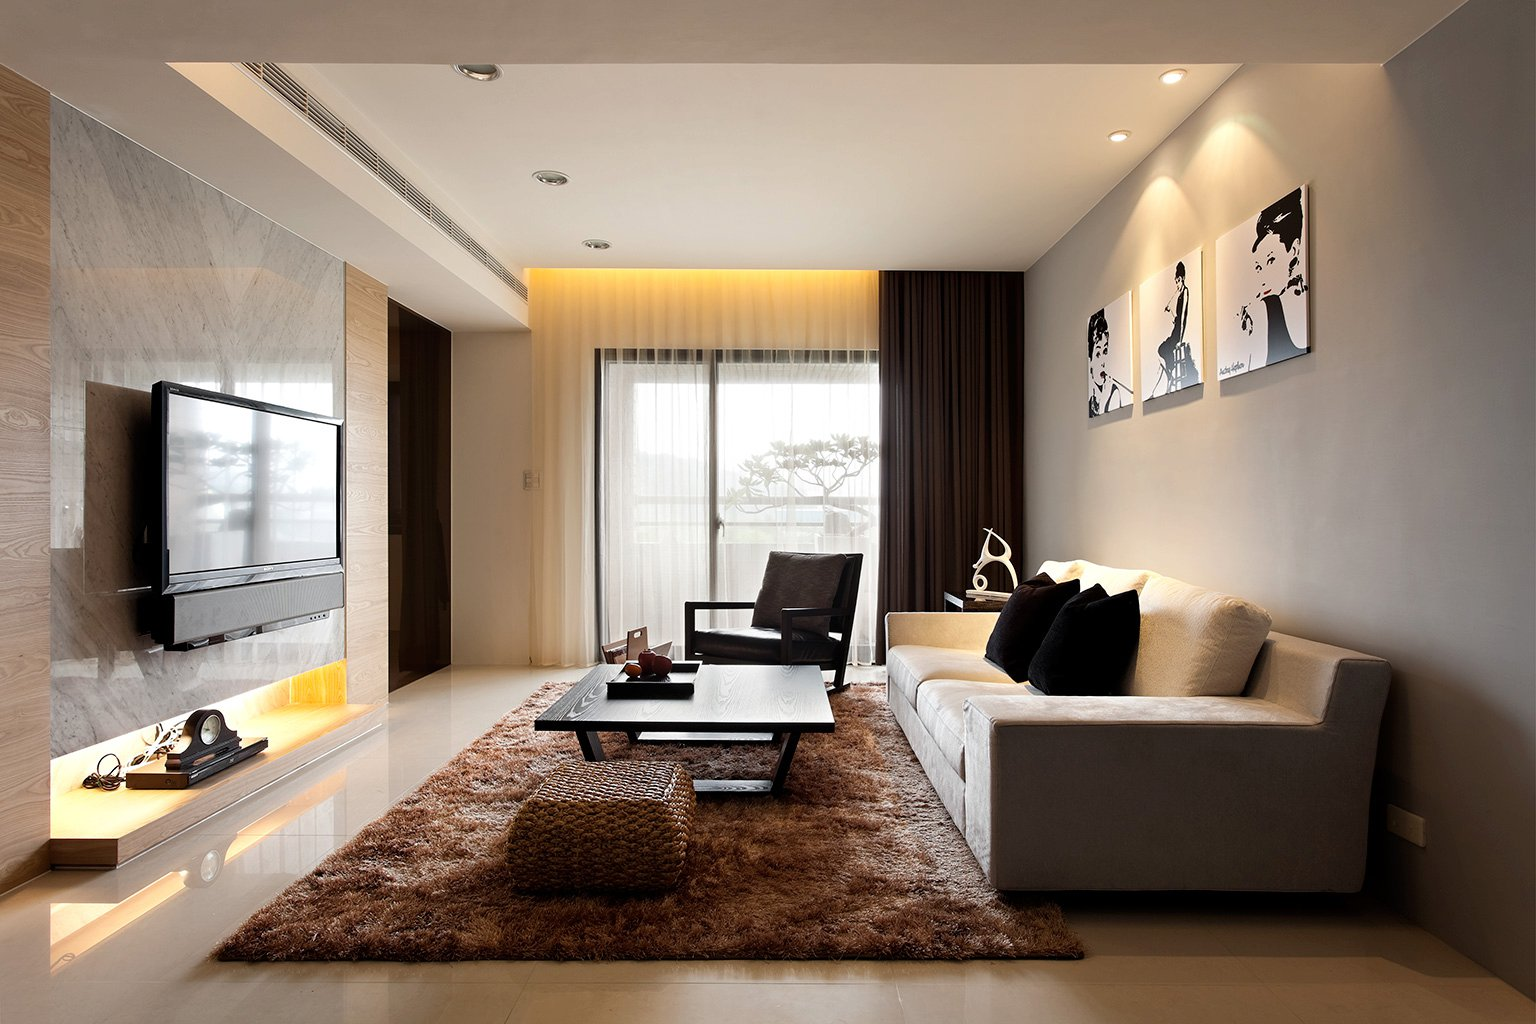 Remarkable Modern Living Room Decorations 1536 x 1024 · 238 kB · jpeg